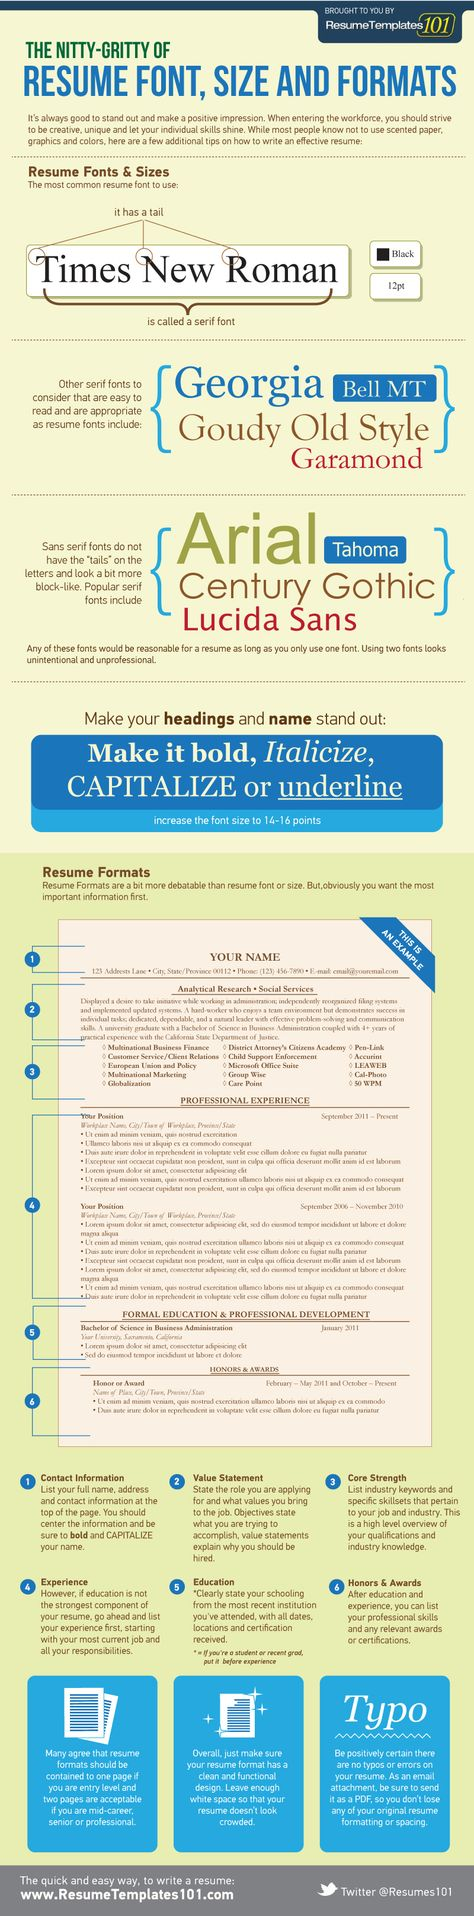 What Is the Best Resume Font, Size and Format? [INFOGRAPHIC]